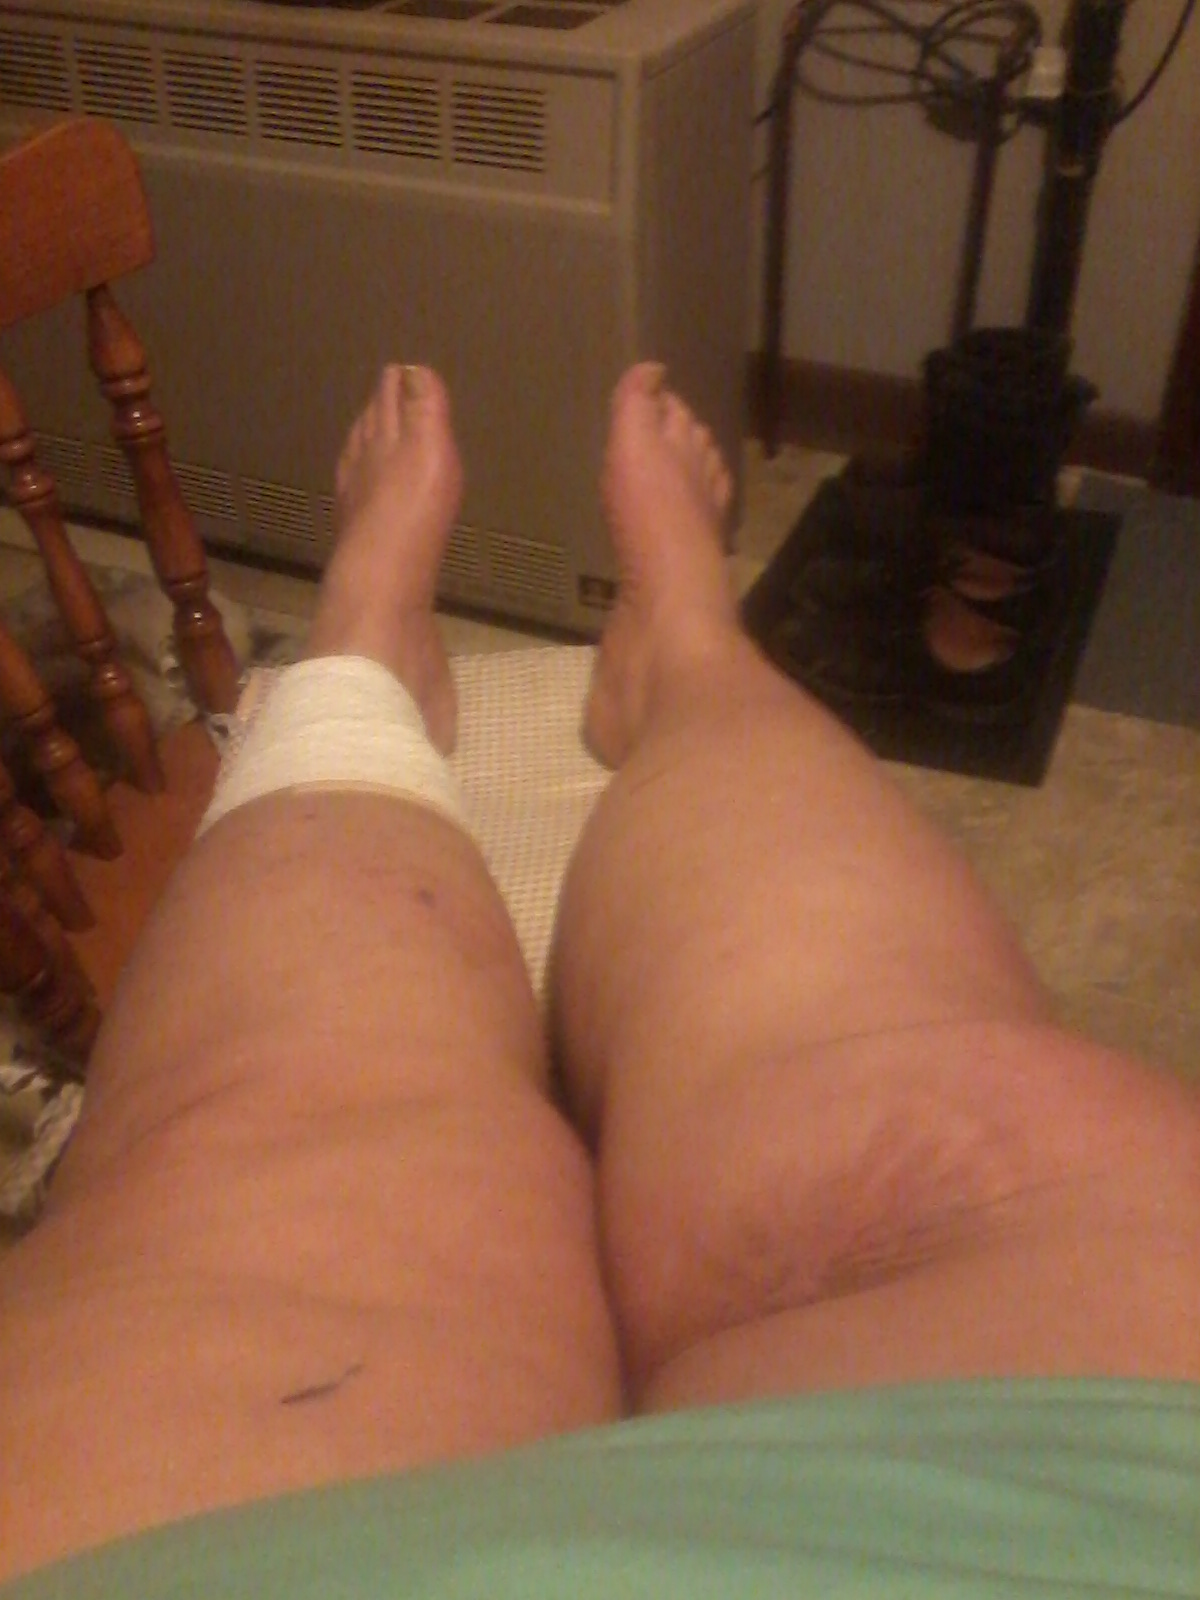 This shows my two legs, the right one scarred from my two operations, the left one still healing from my recent surgery.